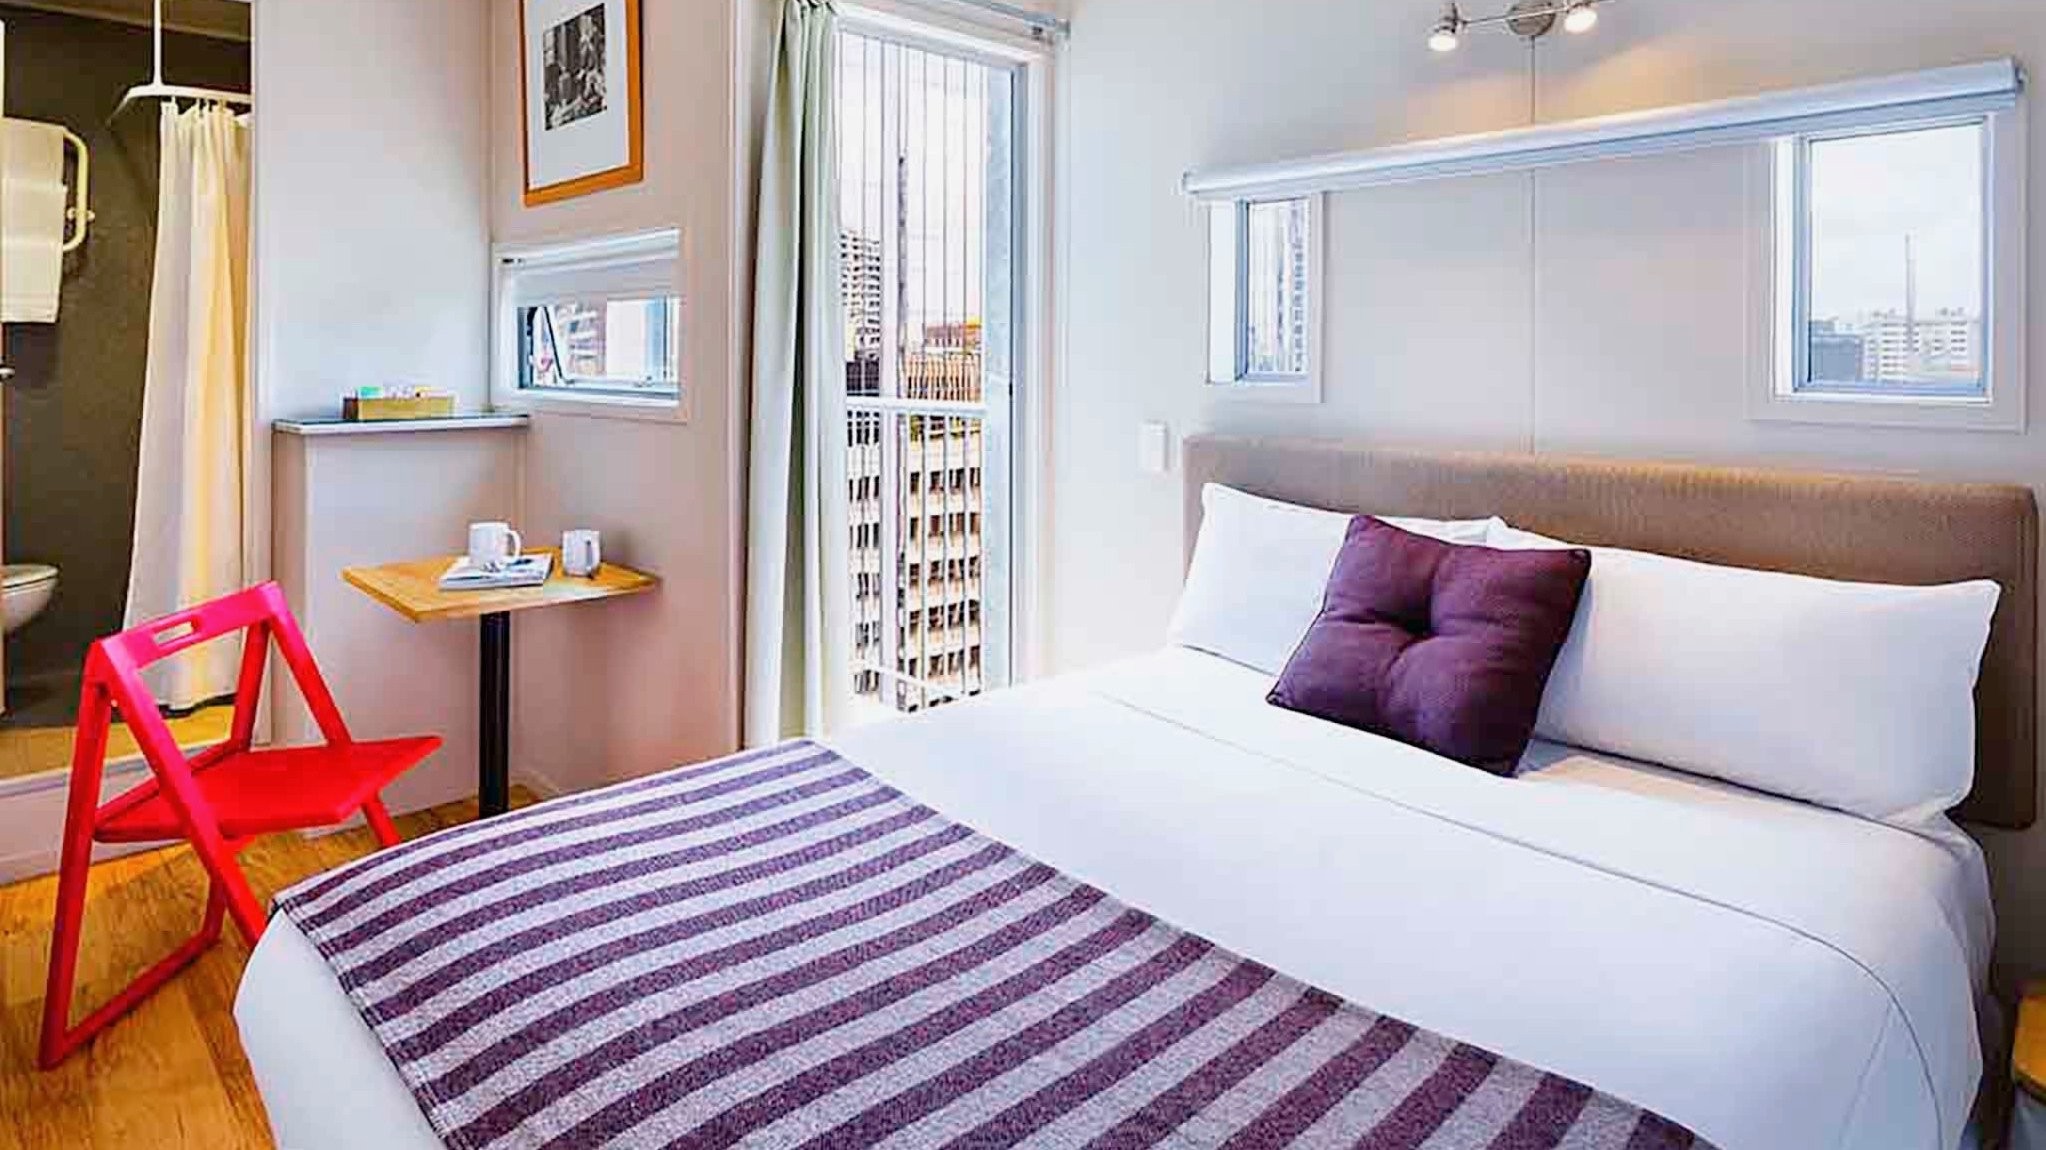 IBIS Budget Auckland CBD Hotel is a cheap 3 star hotel room with large comfy bed.